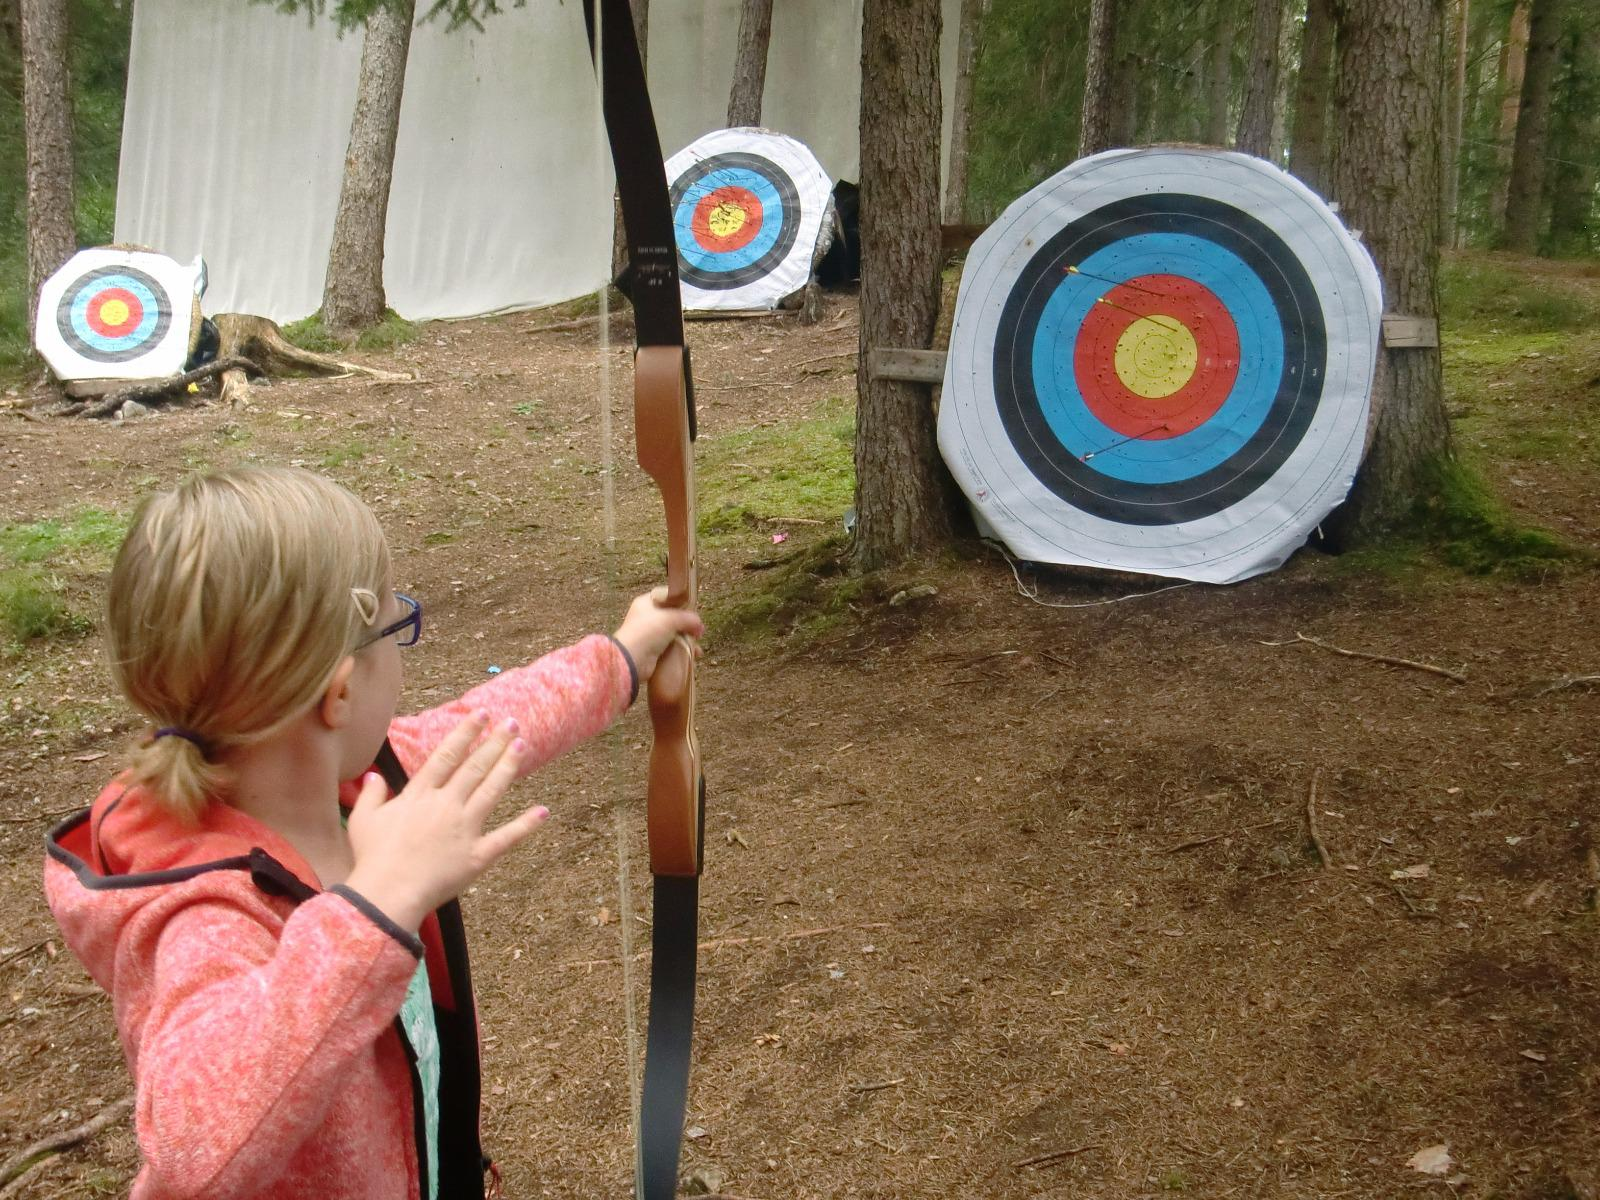 Archery with Willi week programm